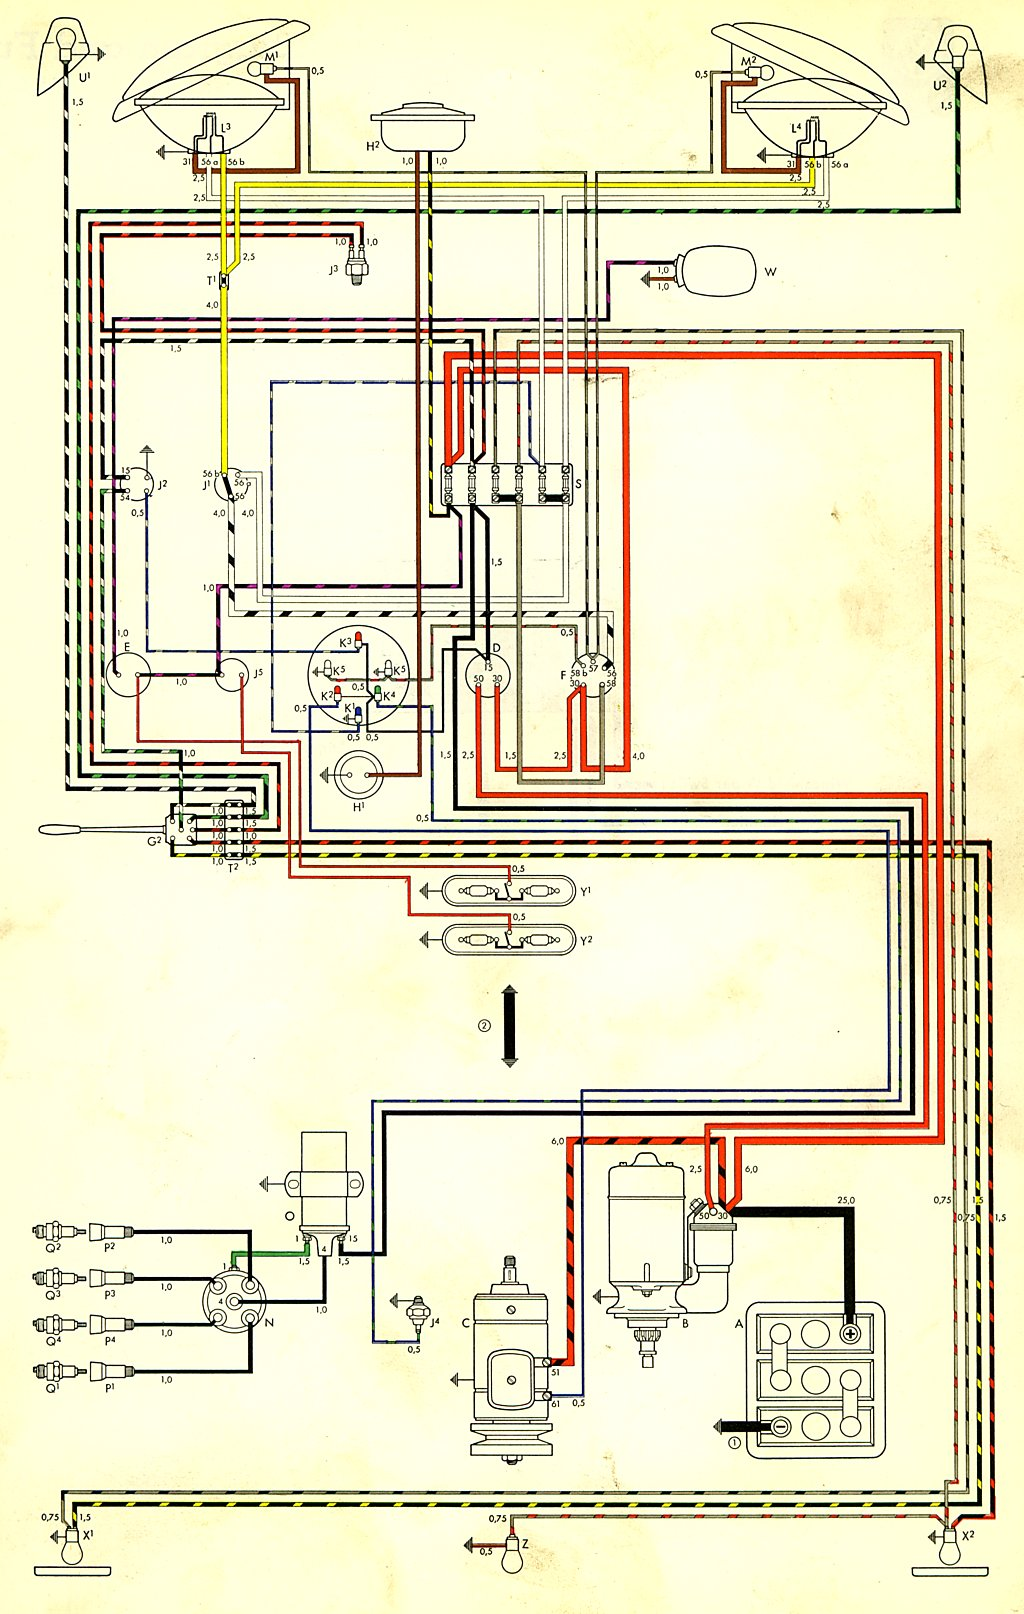 bus_59_USA 1959 bus wiring diagram (usa) thegoldenbug com 1968 vw bug wiring diagram at aneh.co